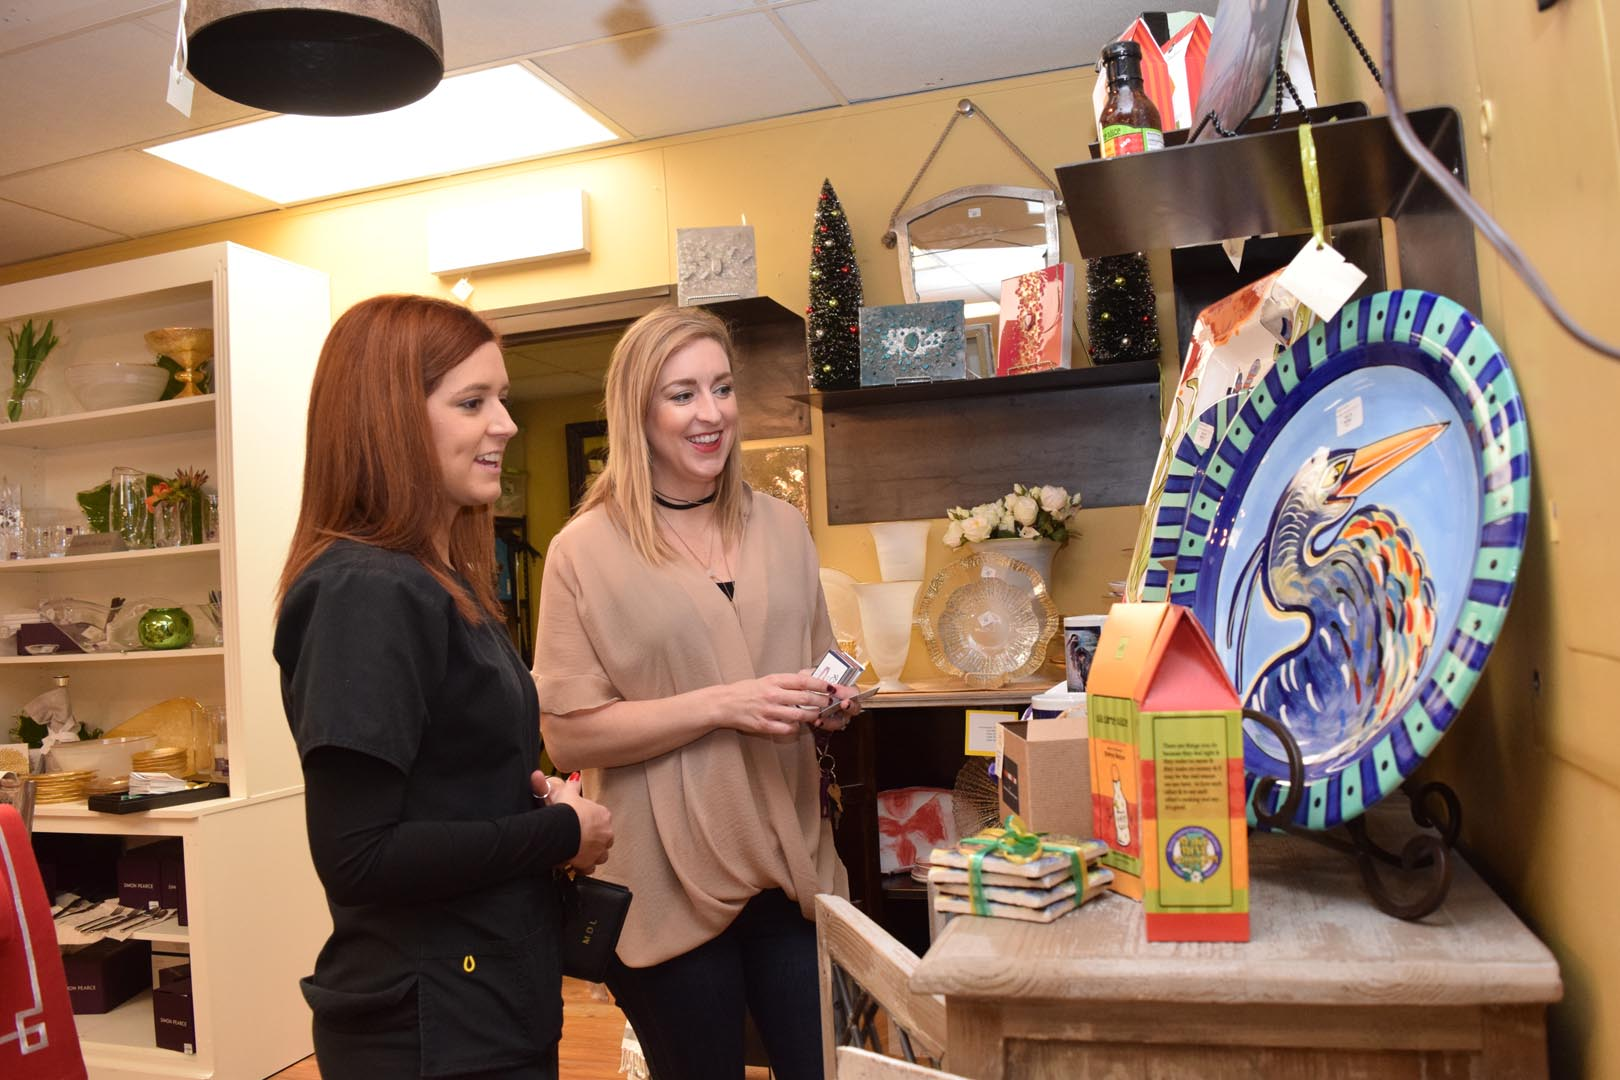 Kristy Lonsberry (right) who works with John Ward Interiors & Gifts located on Metro Drive in Alexandria, helps customer Makayla Liberatore.